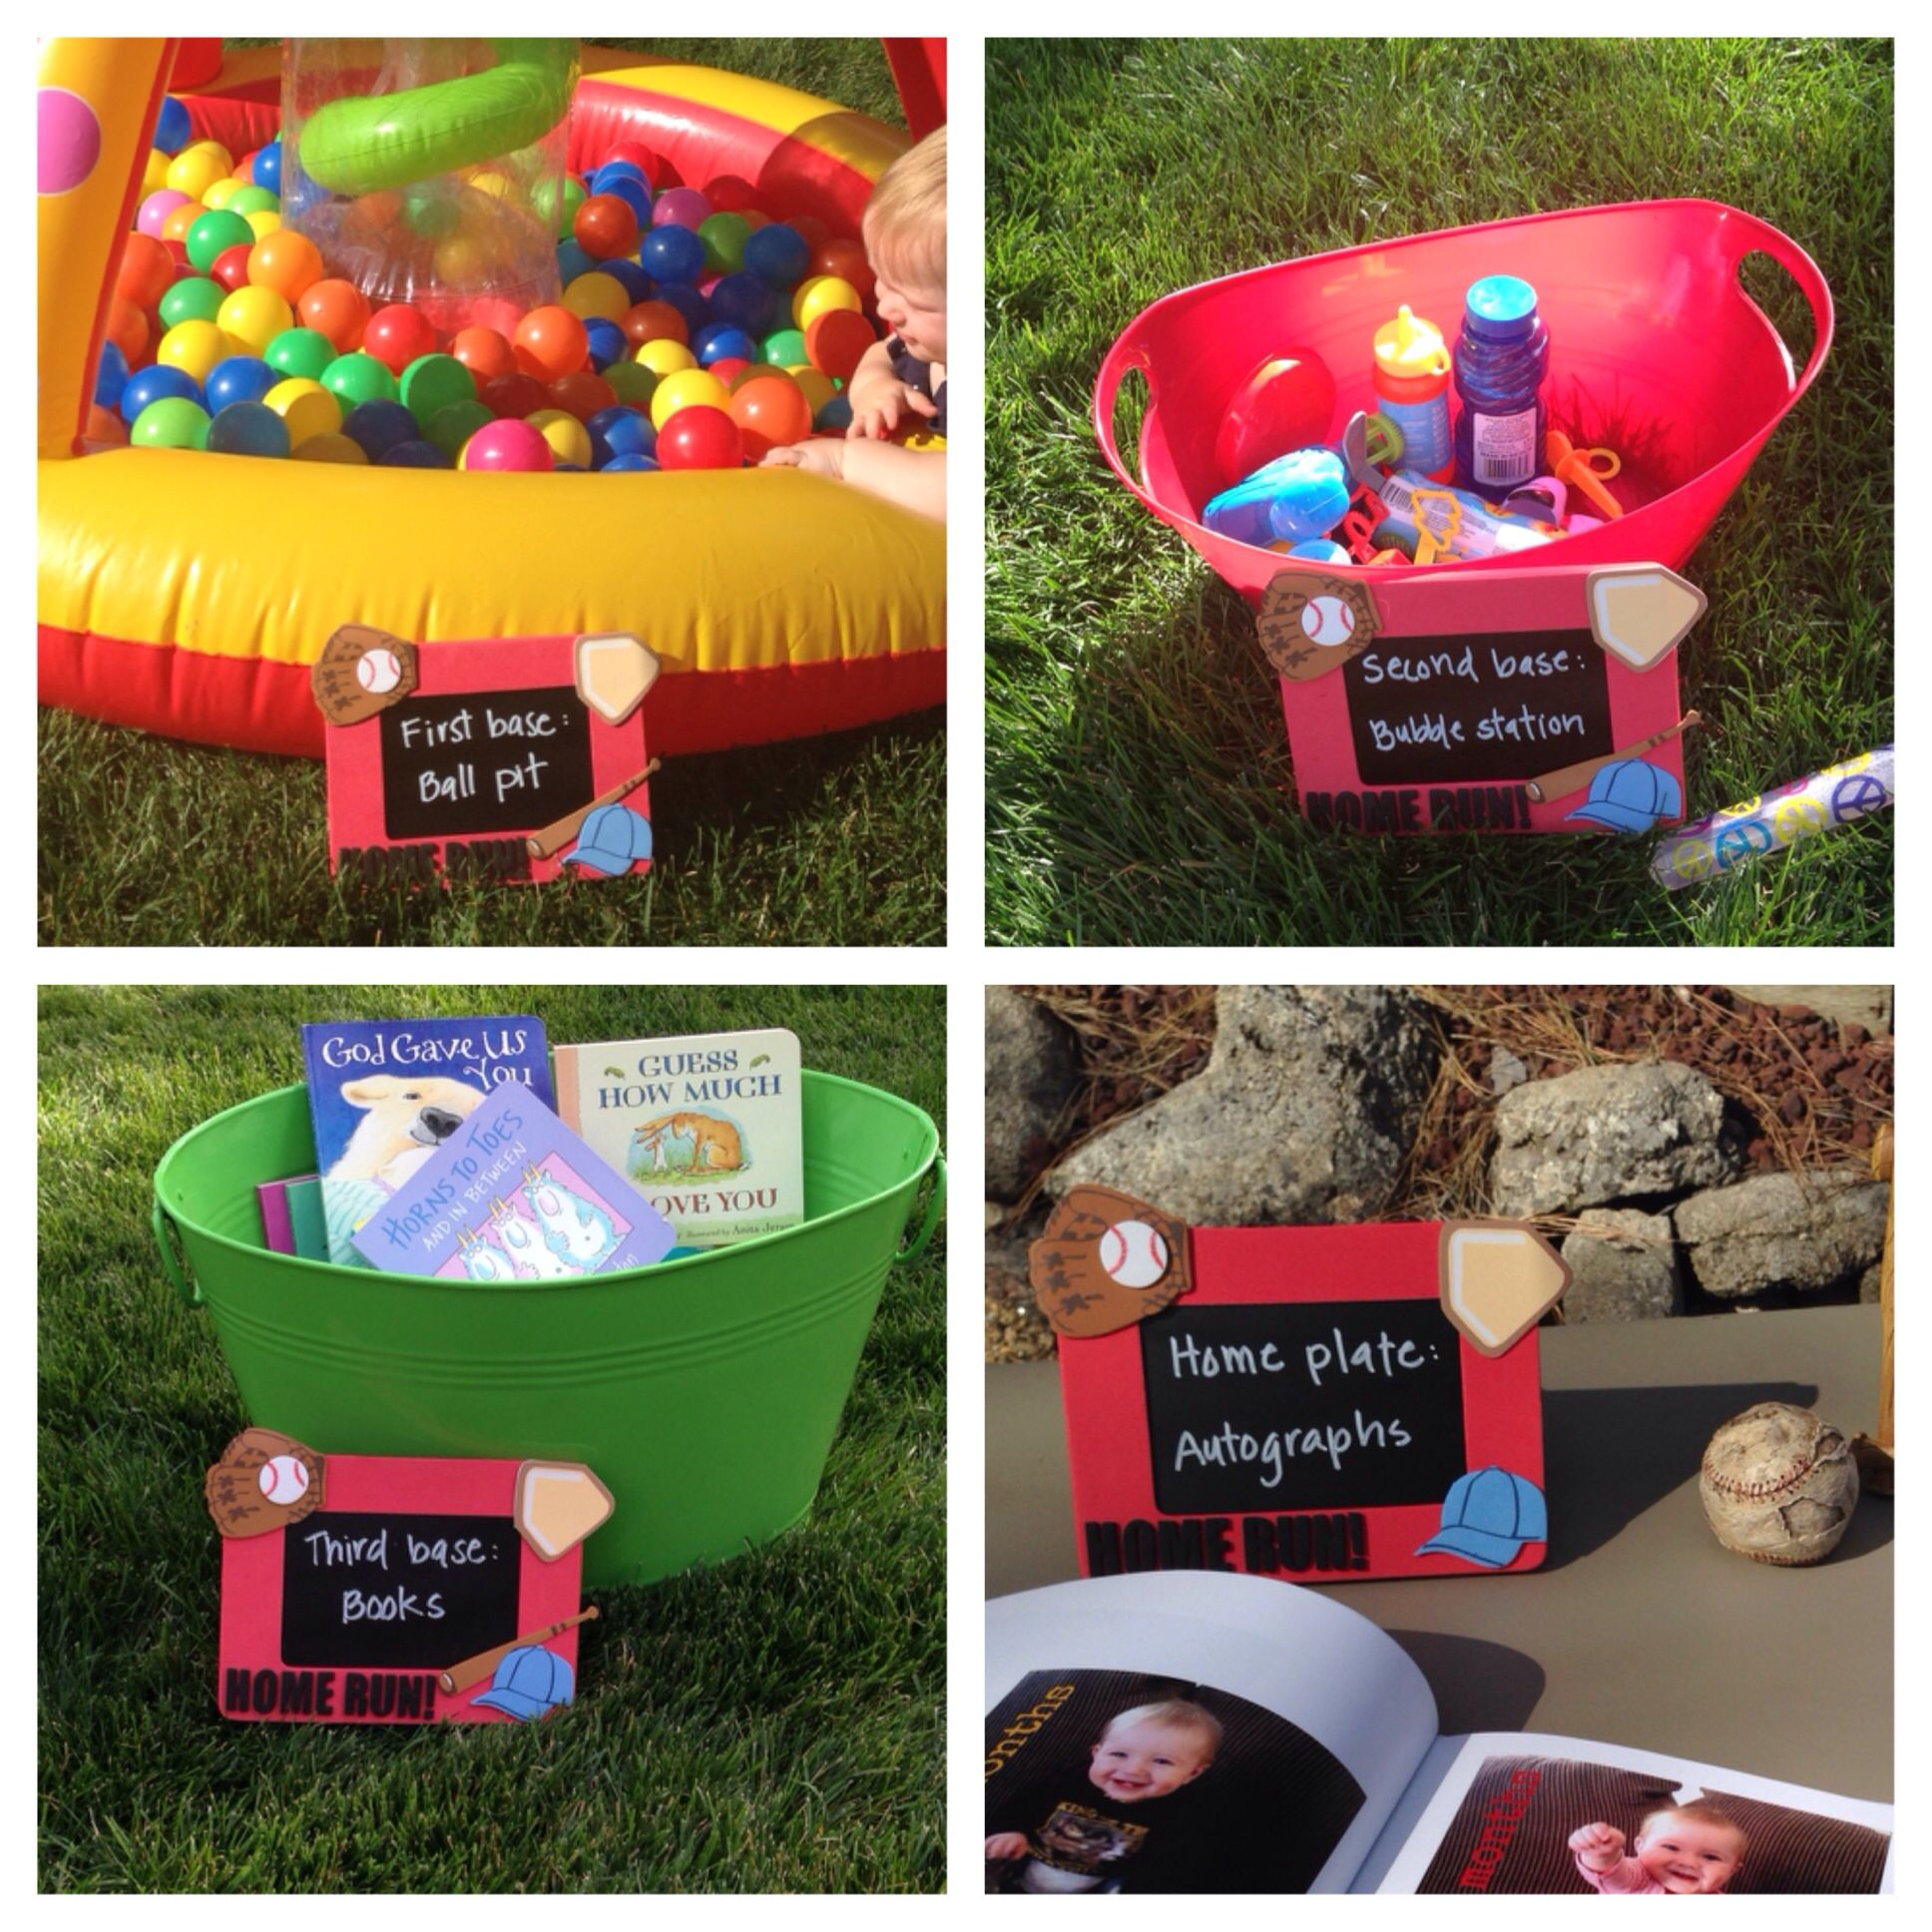 Baseball themed first birthday party activities at each